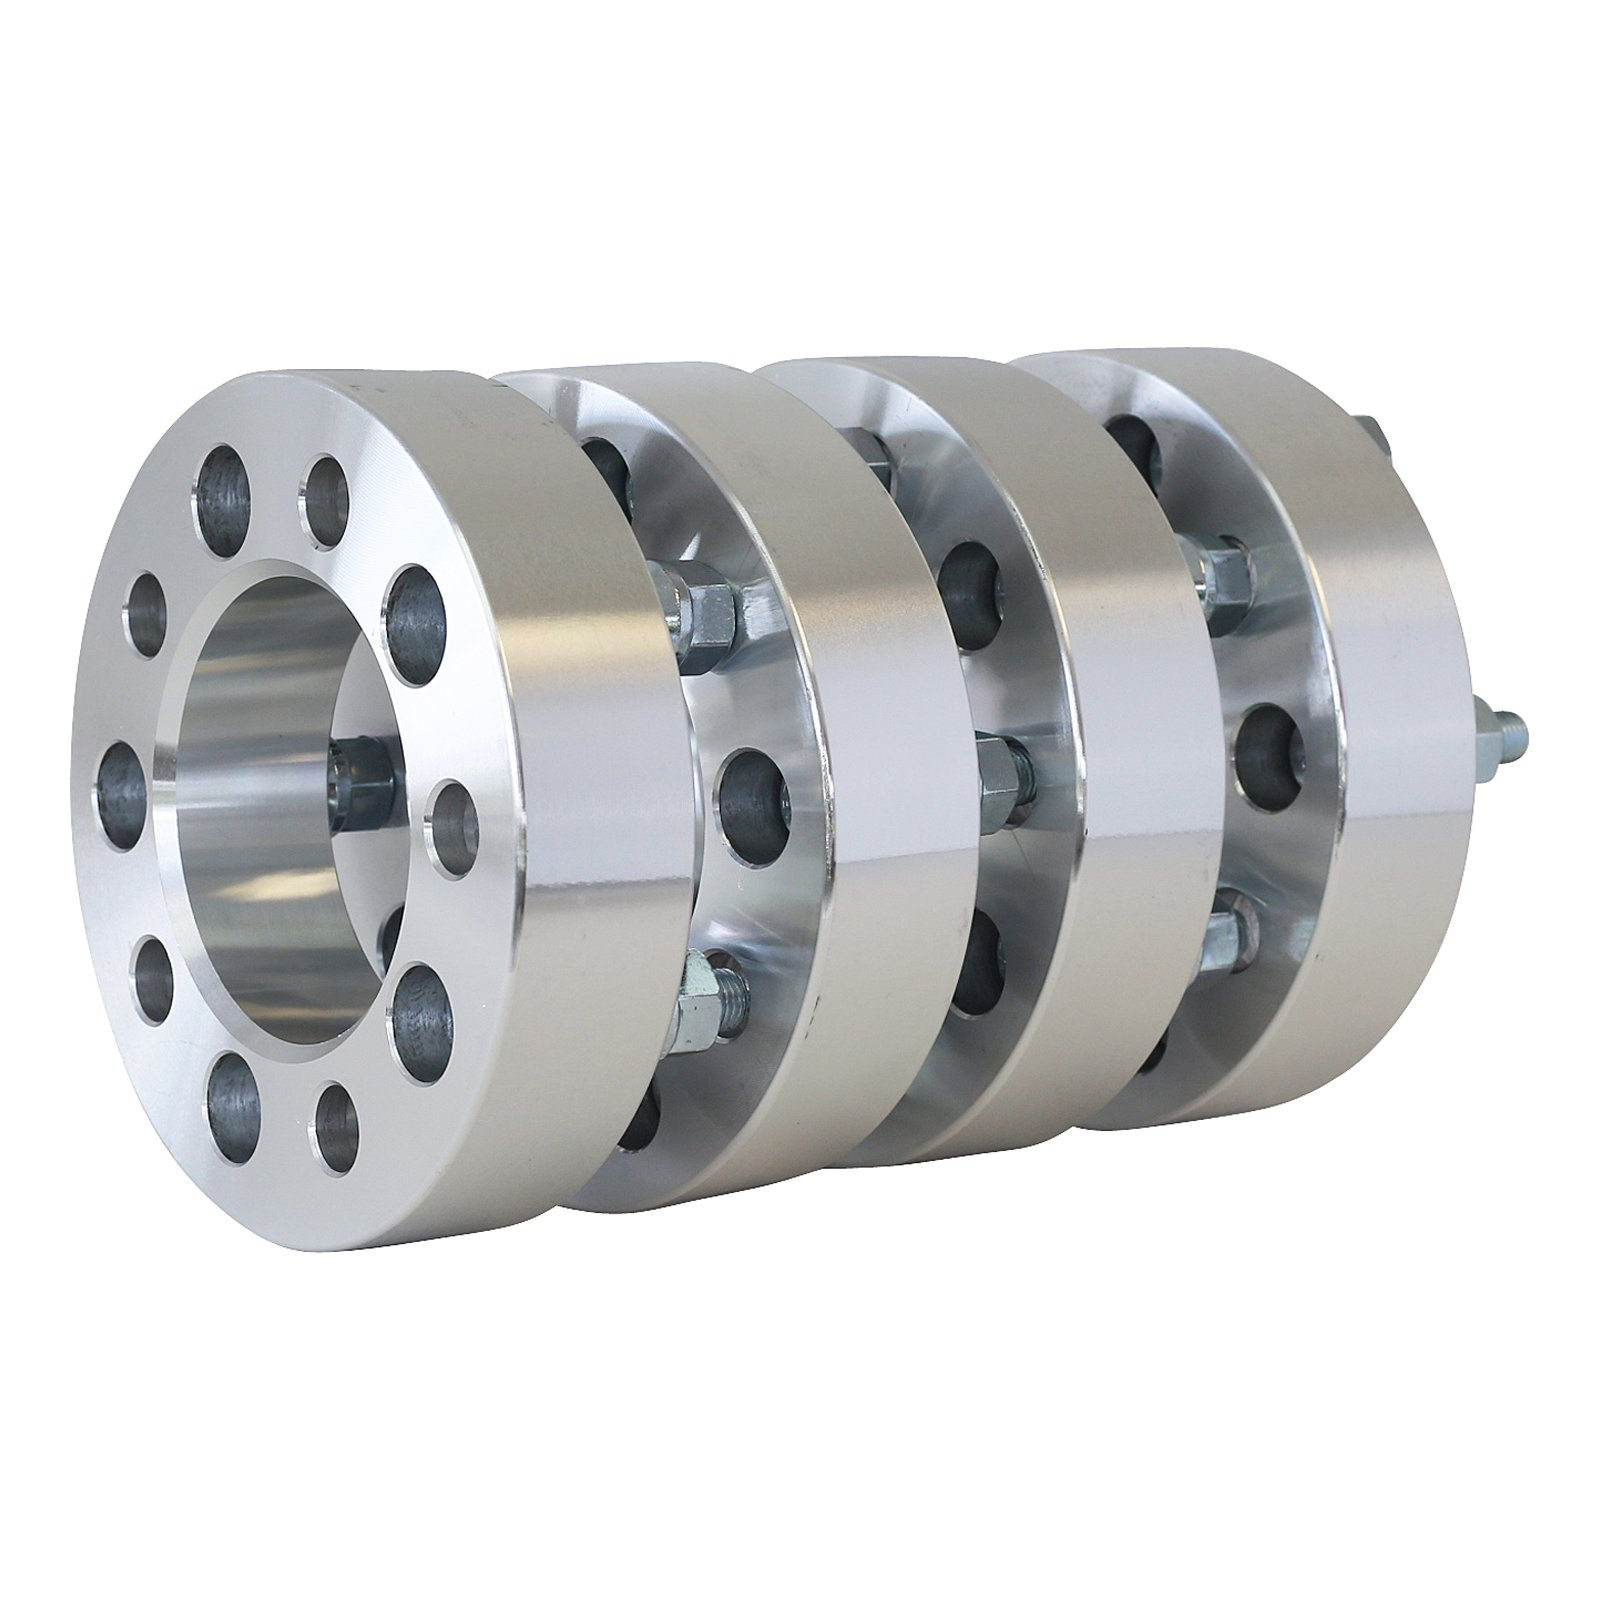 4 qty | 3'' (1.5'' per side) | 5 X 4.75 Wheel Spacers Adapters | 12X1.5 | 5x4.75 - SmartPartsCo